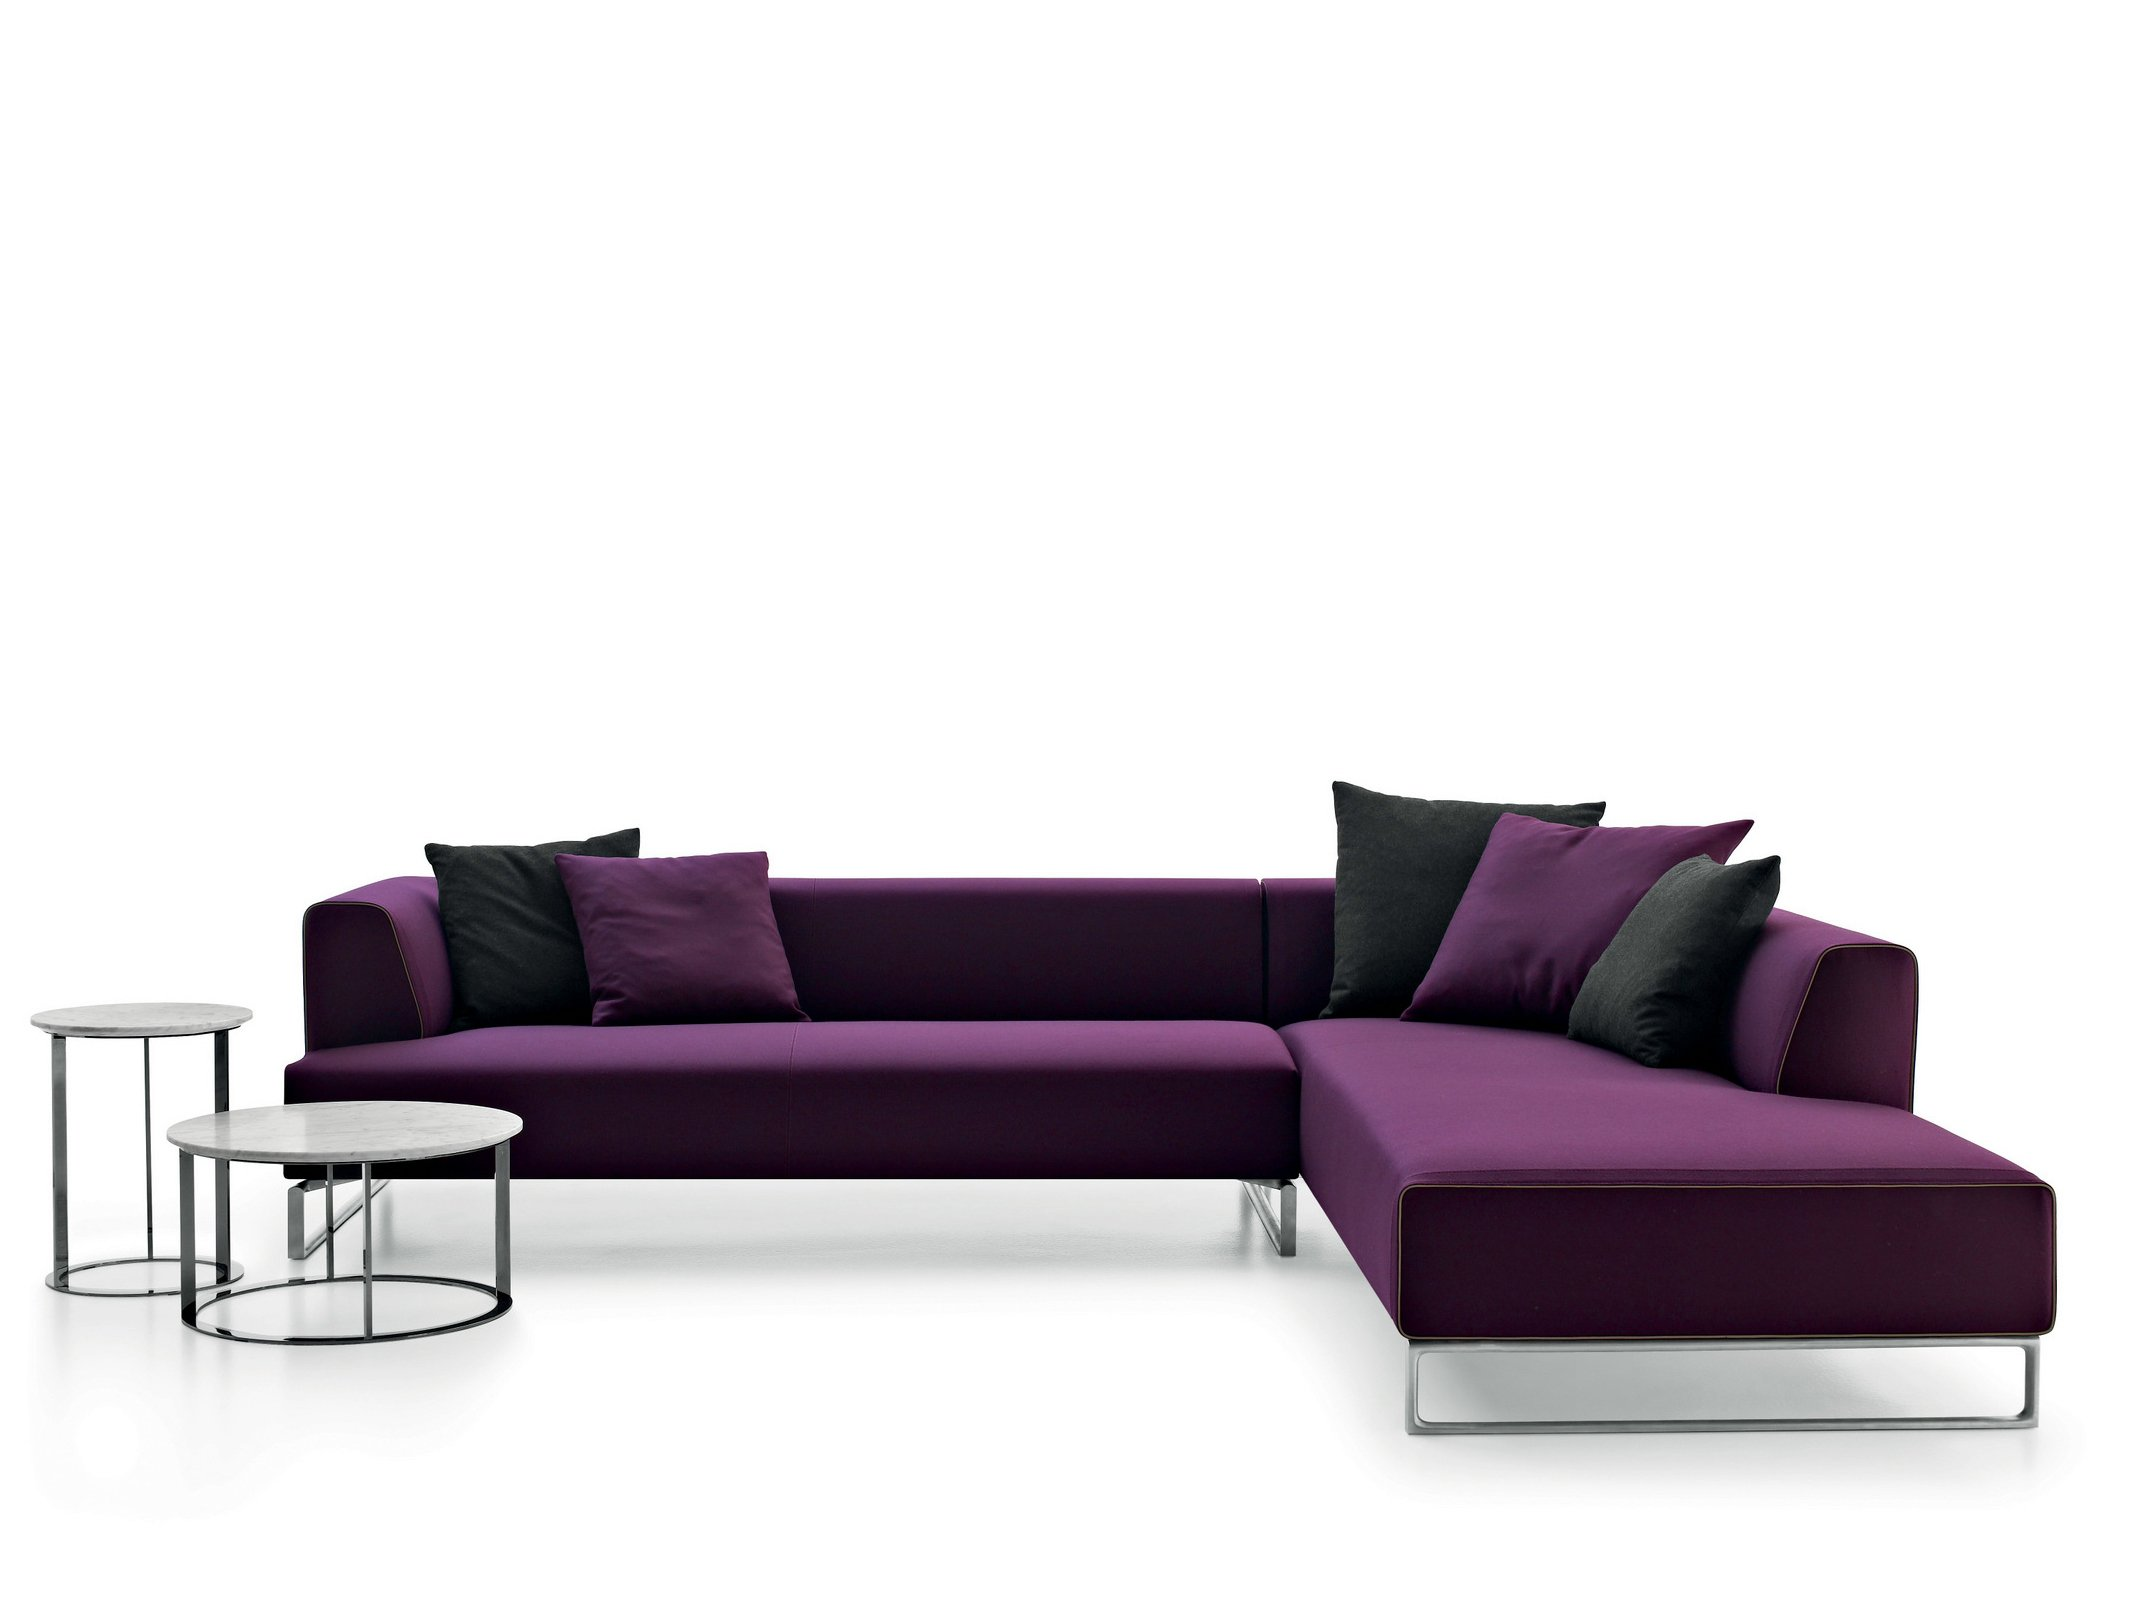 Solo 39 14 corner sofa by b b italia design antonio citterio for B b couch